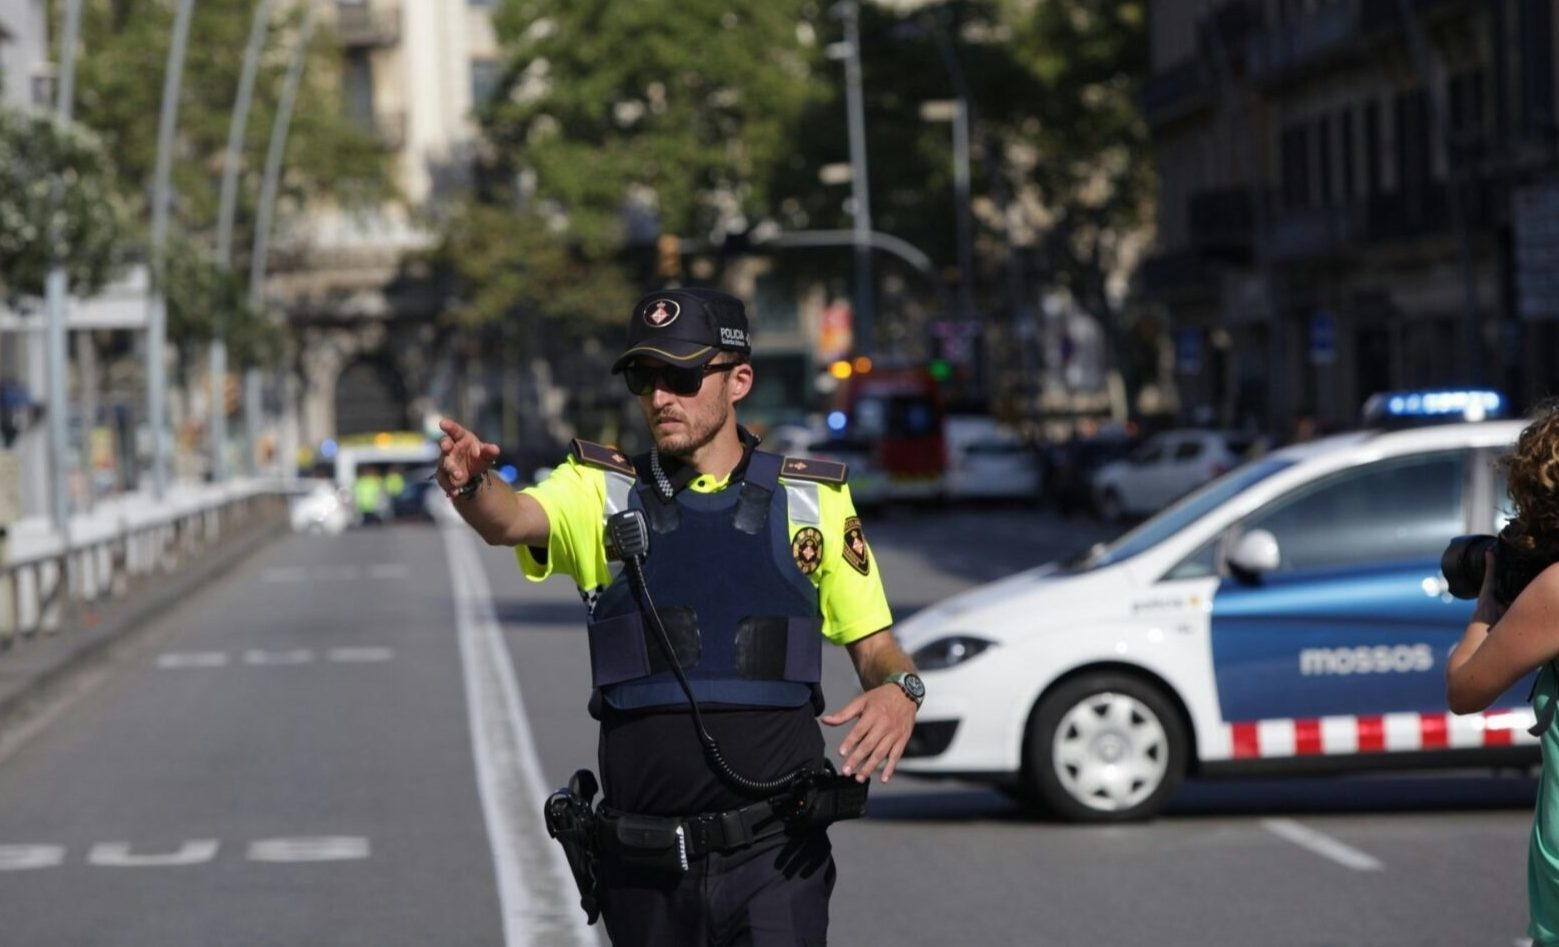 A police officer blocks the traffic after a van plowed into the crowd, injuring several people in Barcelona, ( Albert Llop/Anadolu Agency/Getty Images)